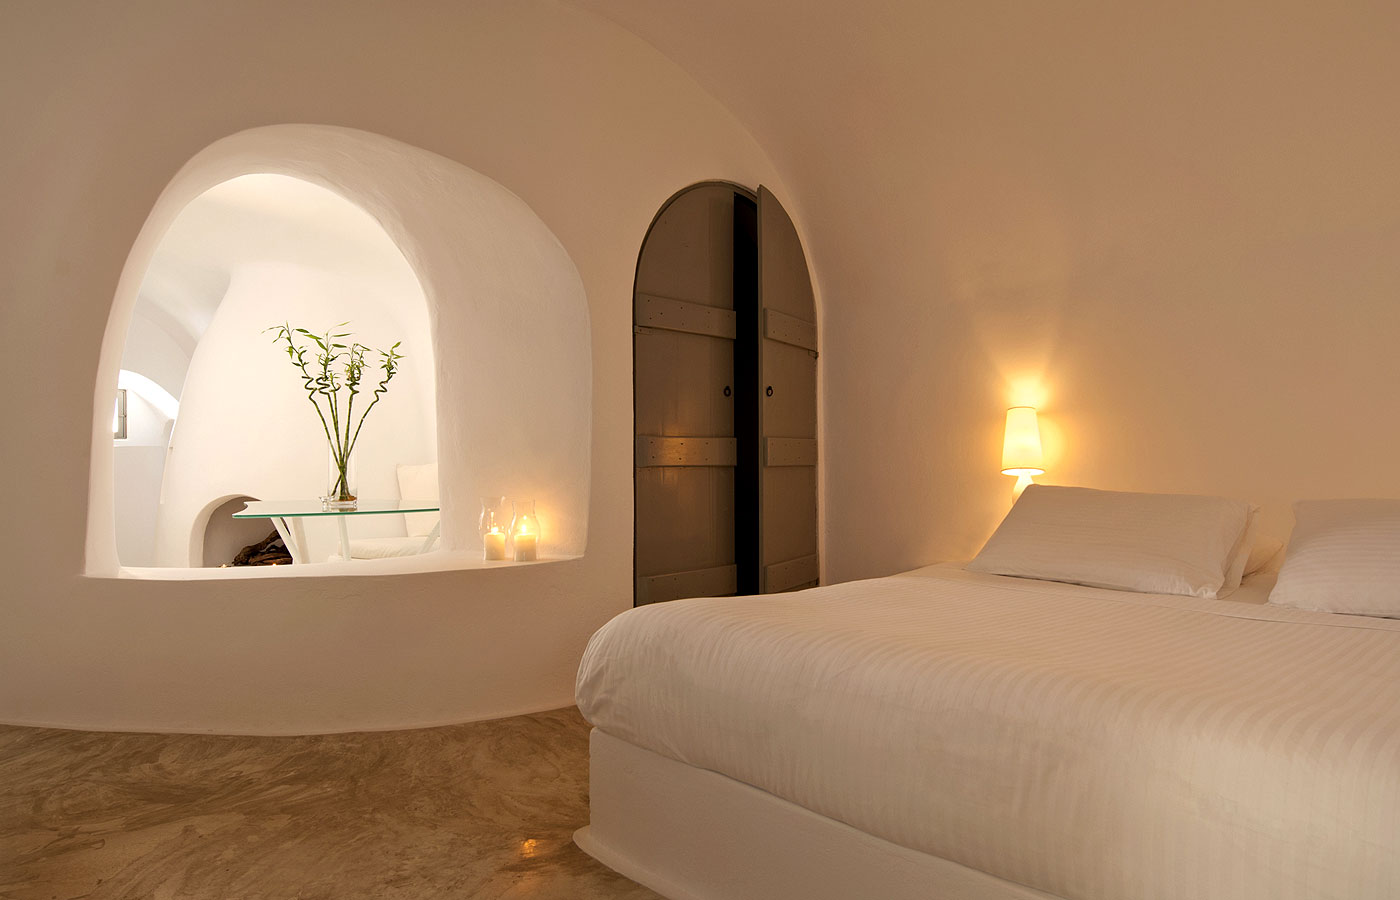 artemis-villas-room